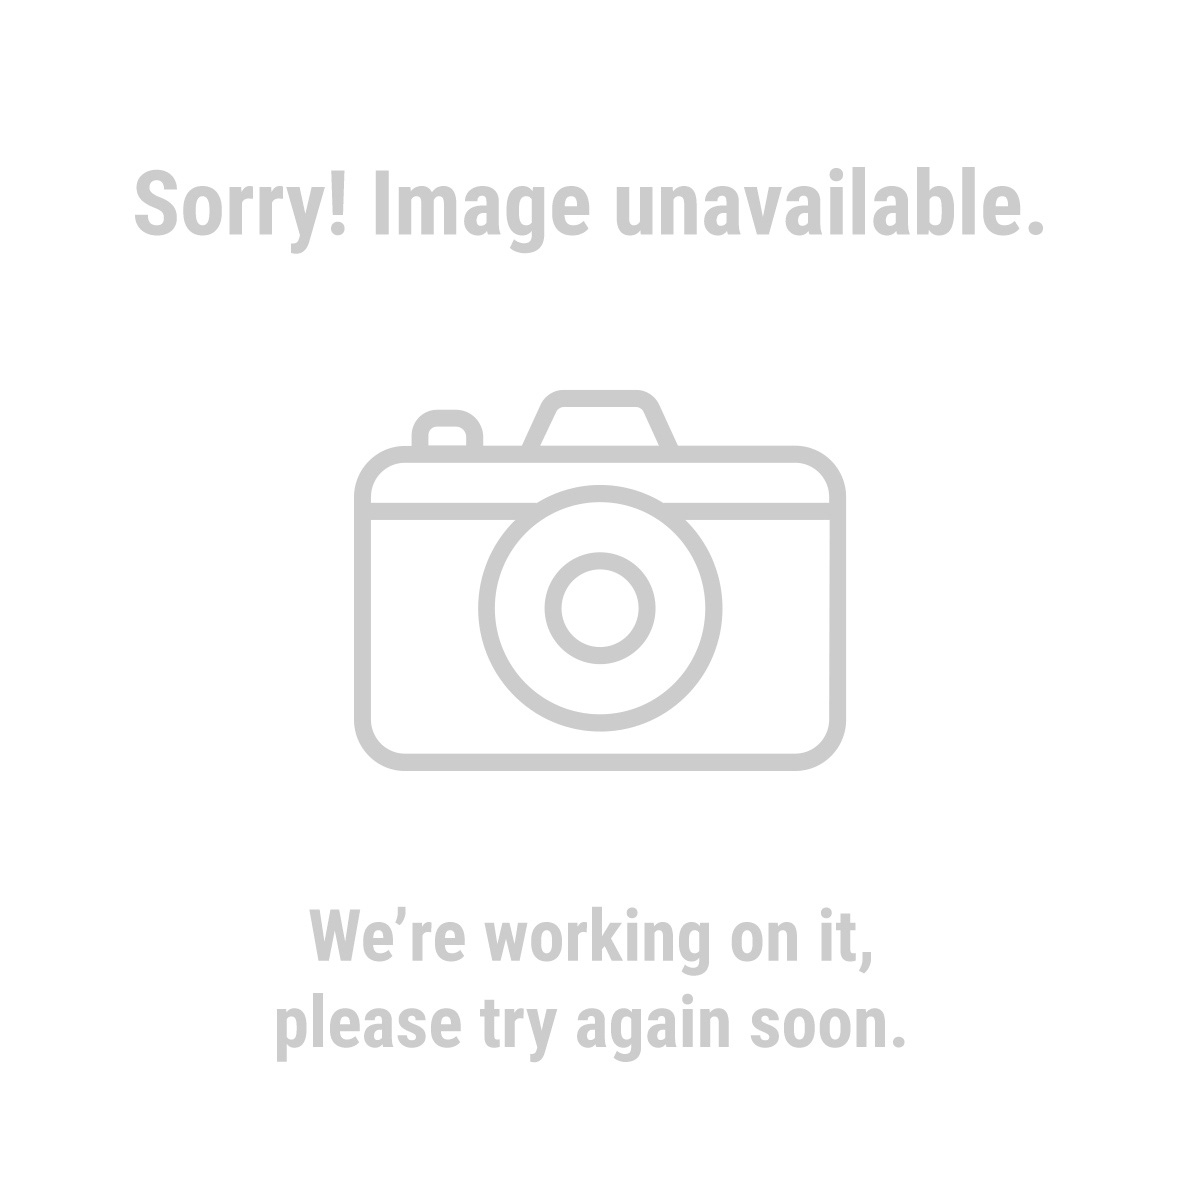 Storehouse 67525 180 Piece Viton O-Ring Kit